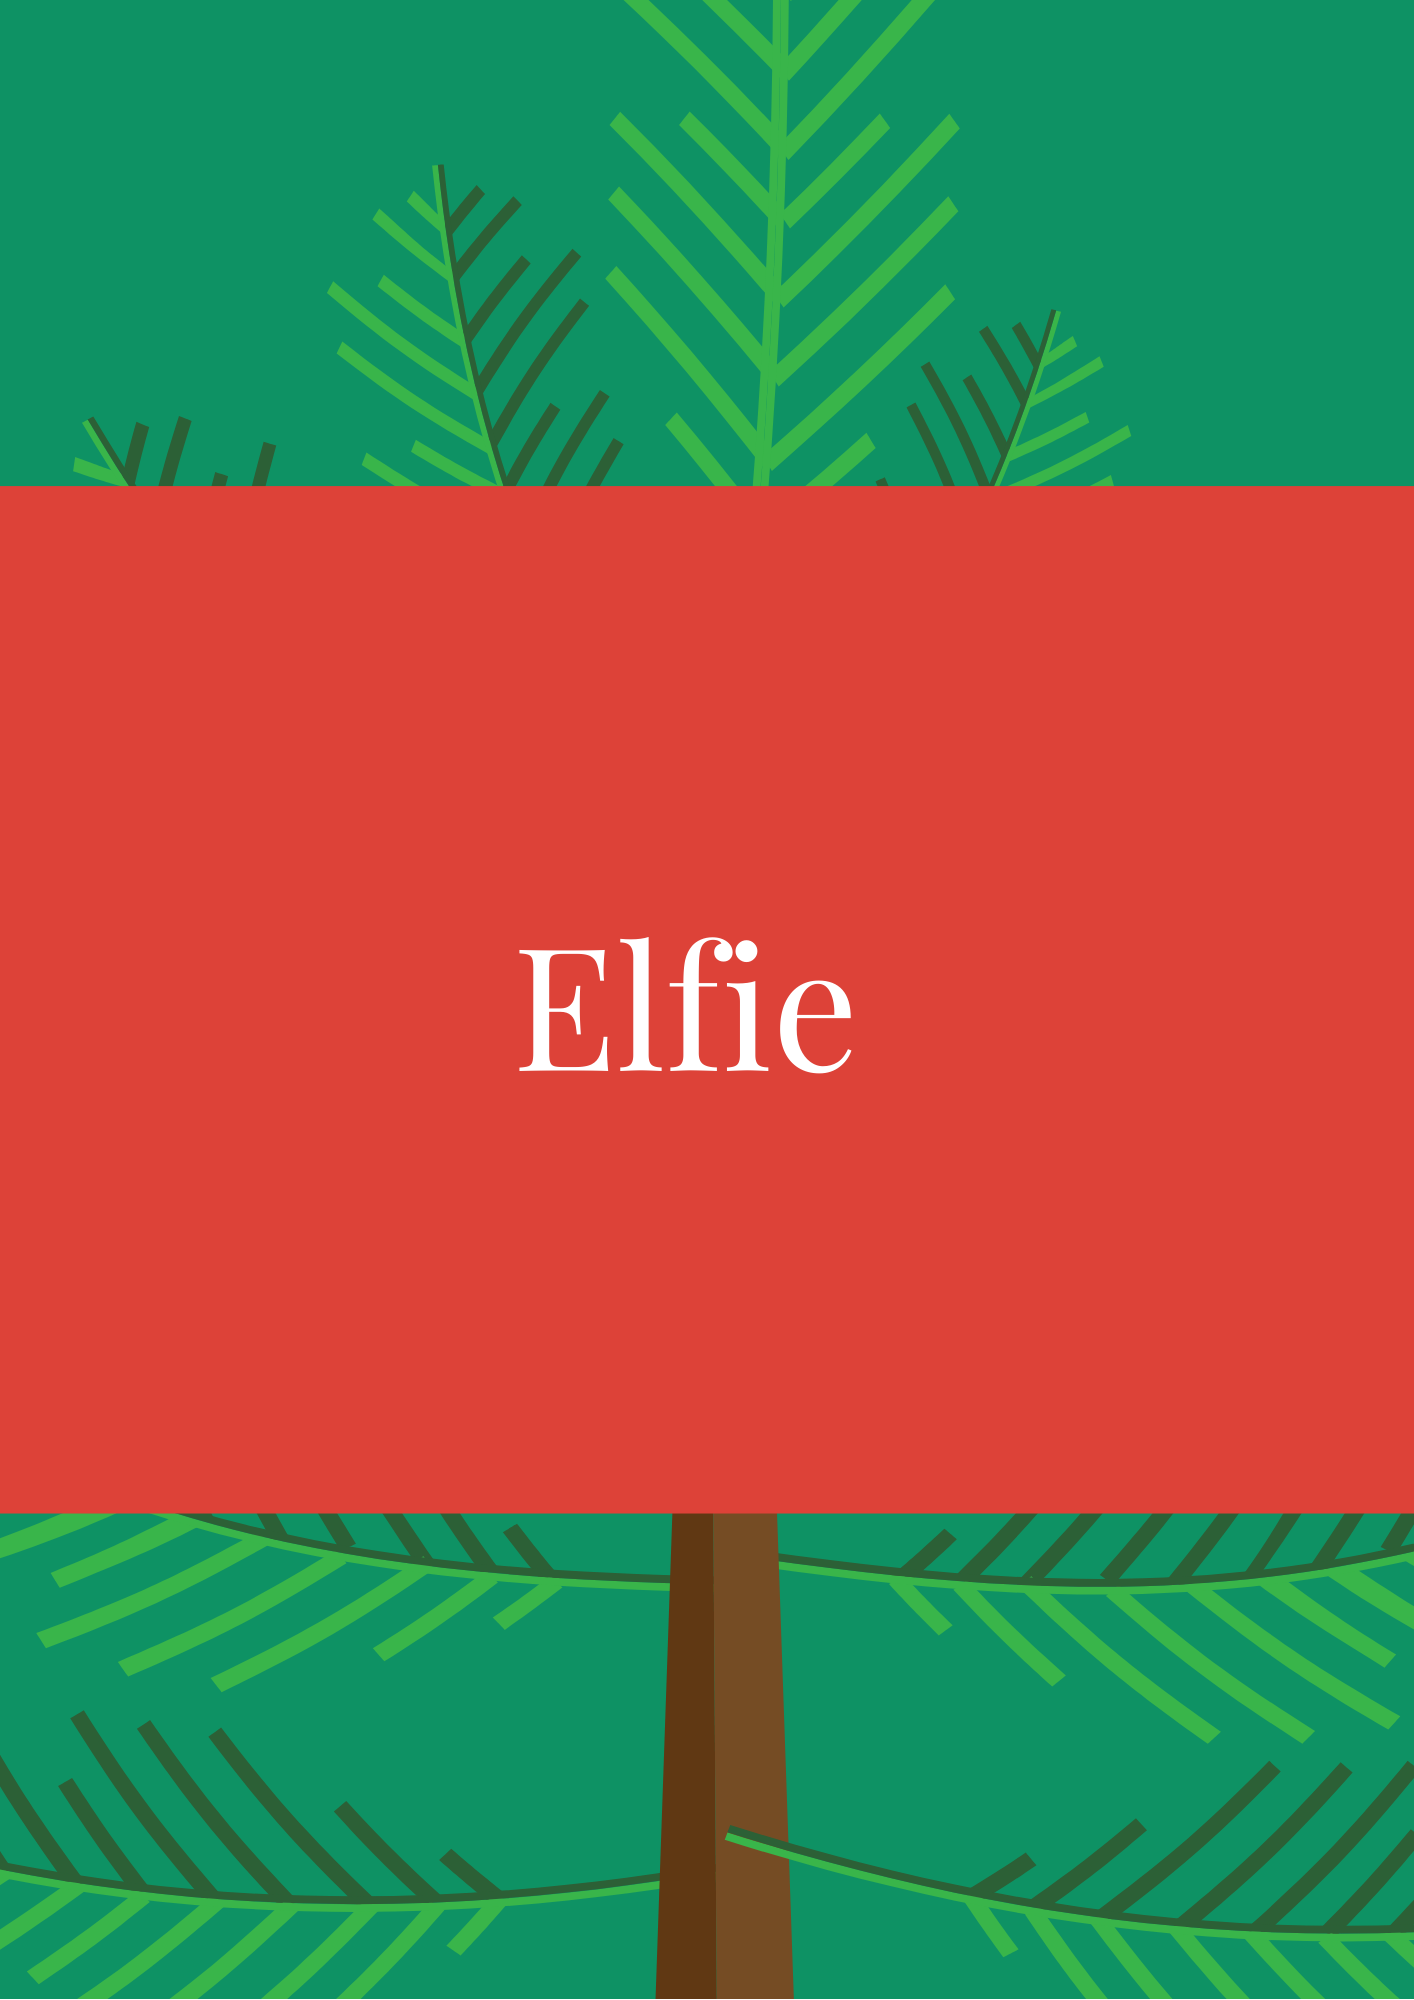 Elfie Elf Names